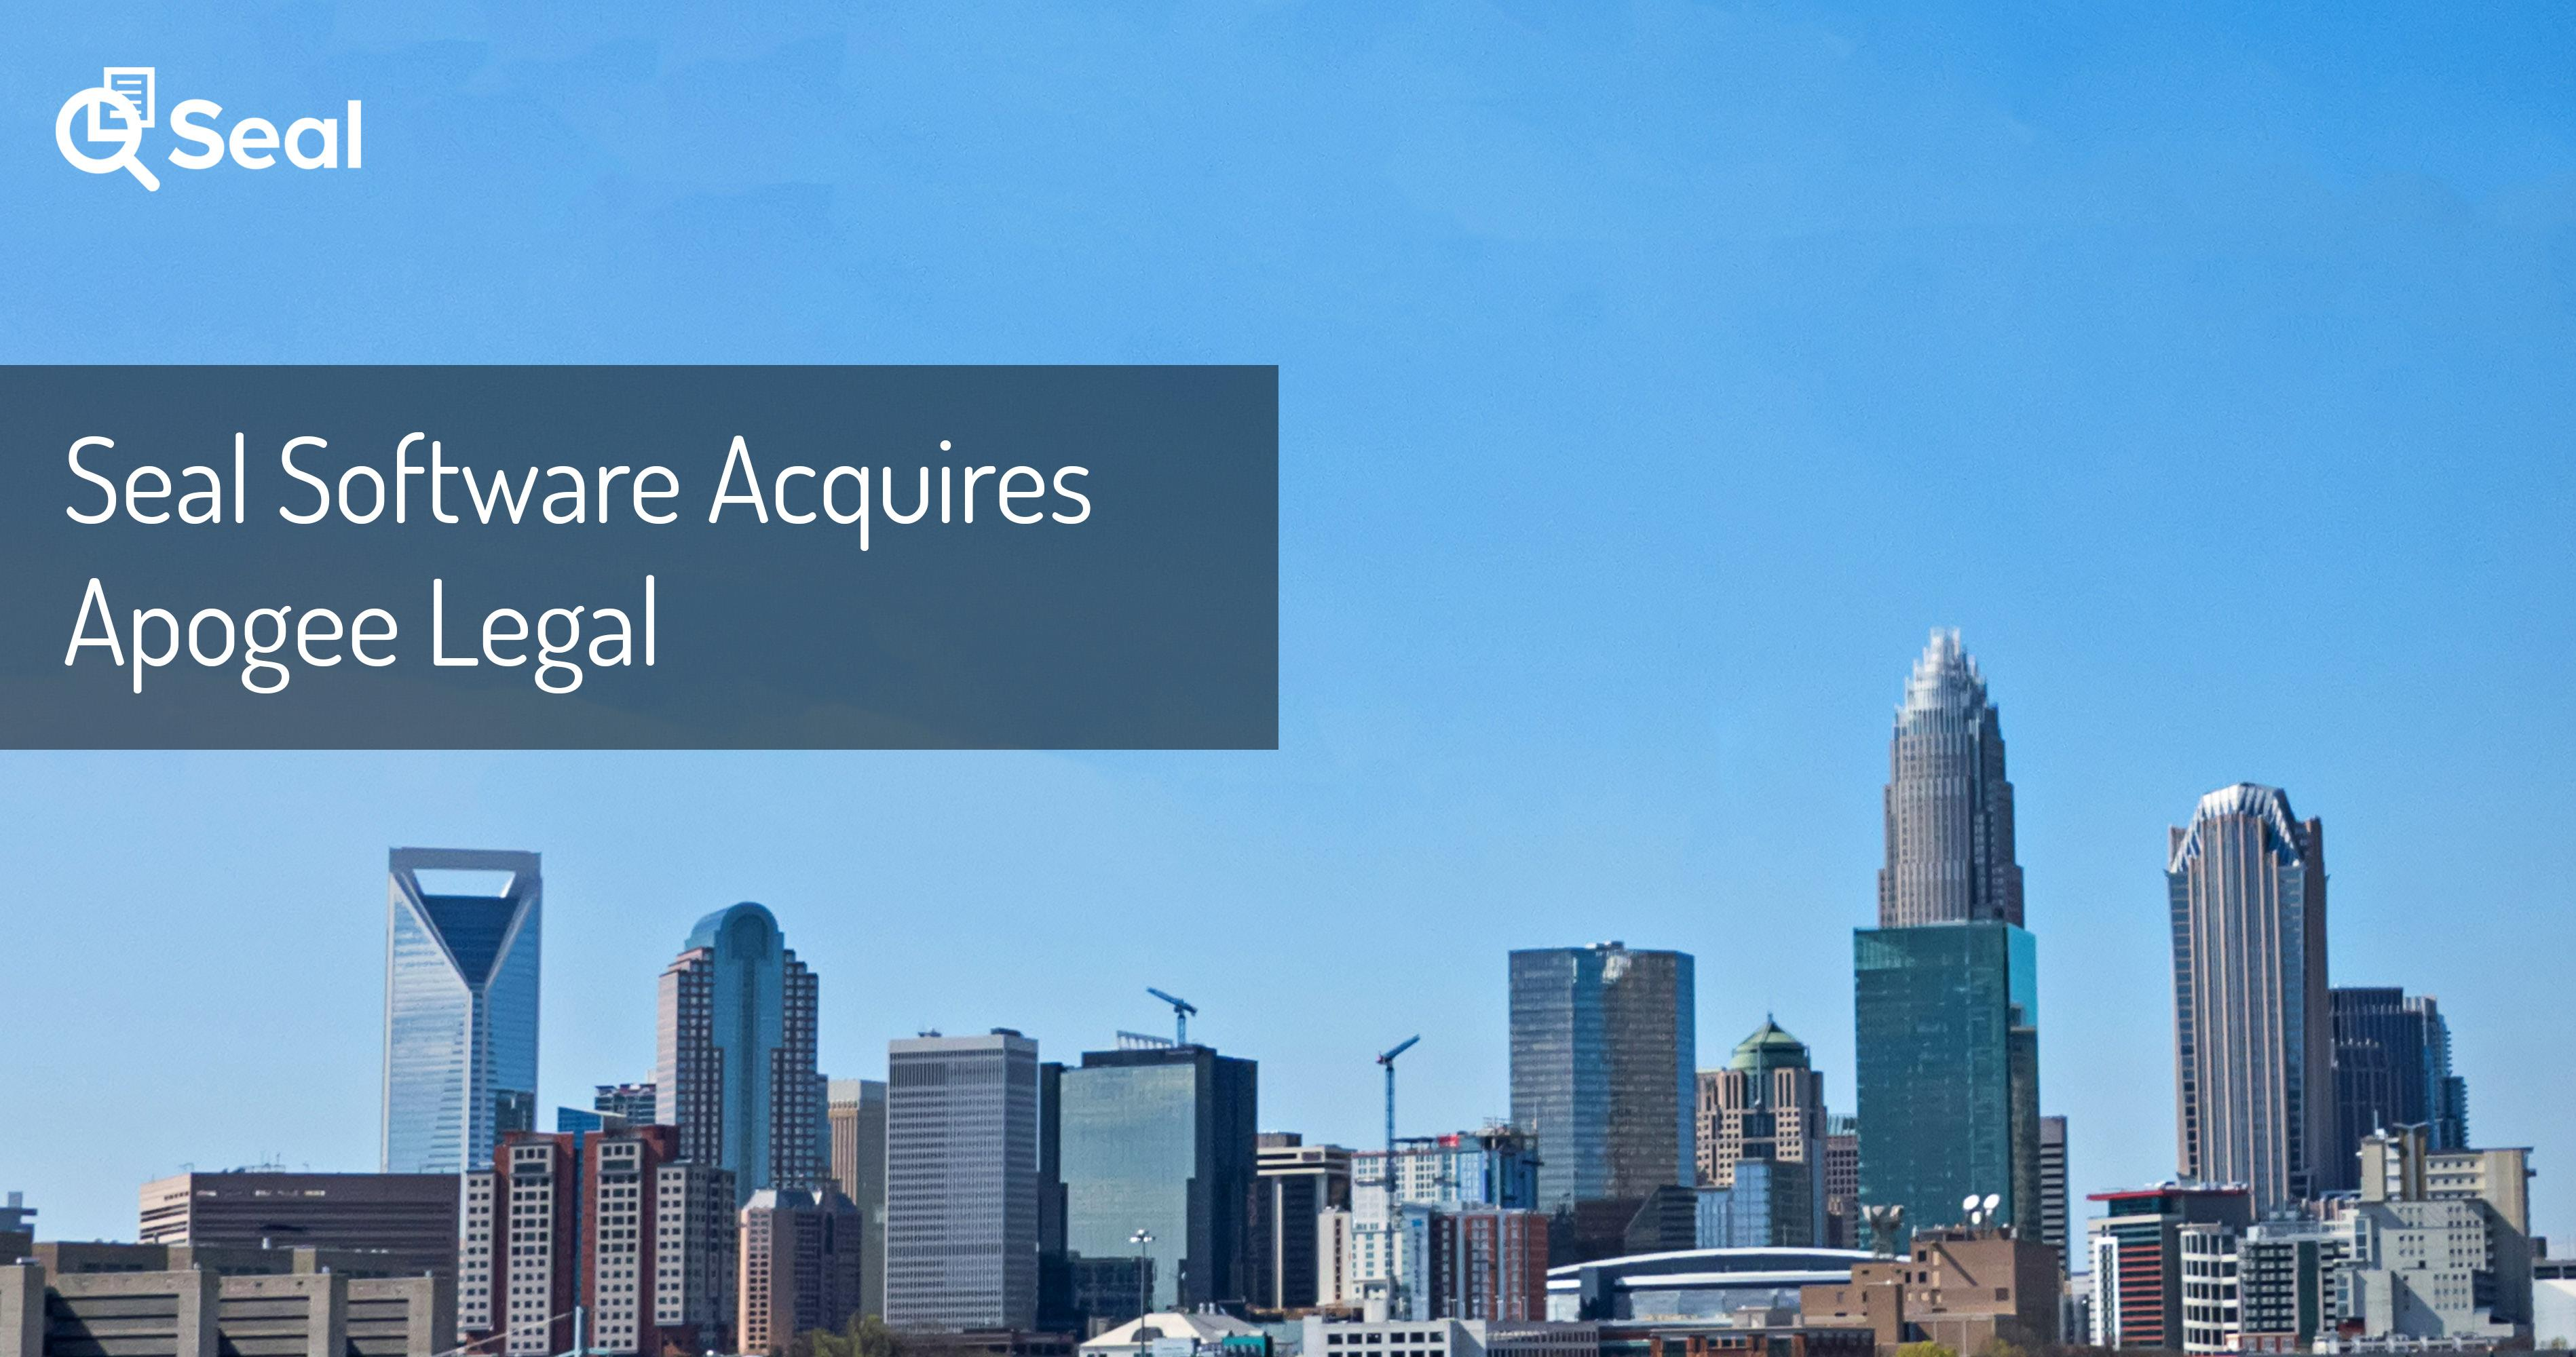 Seal Software Acquires Apogee Legal